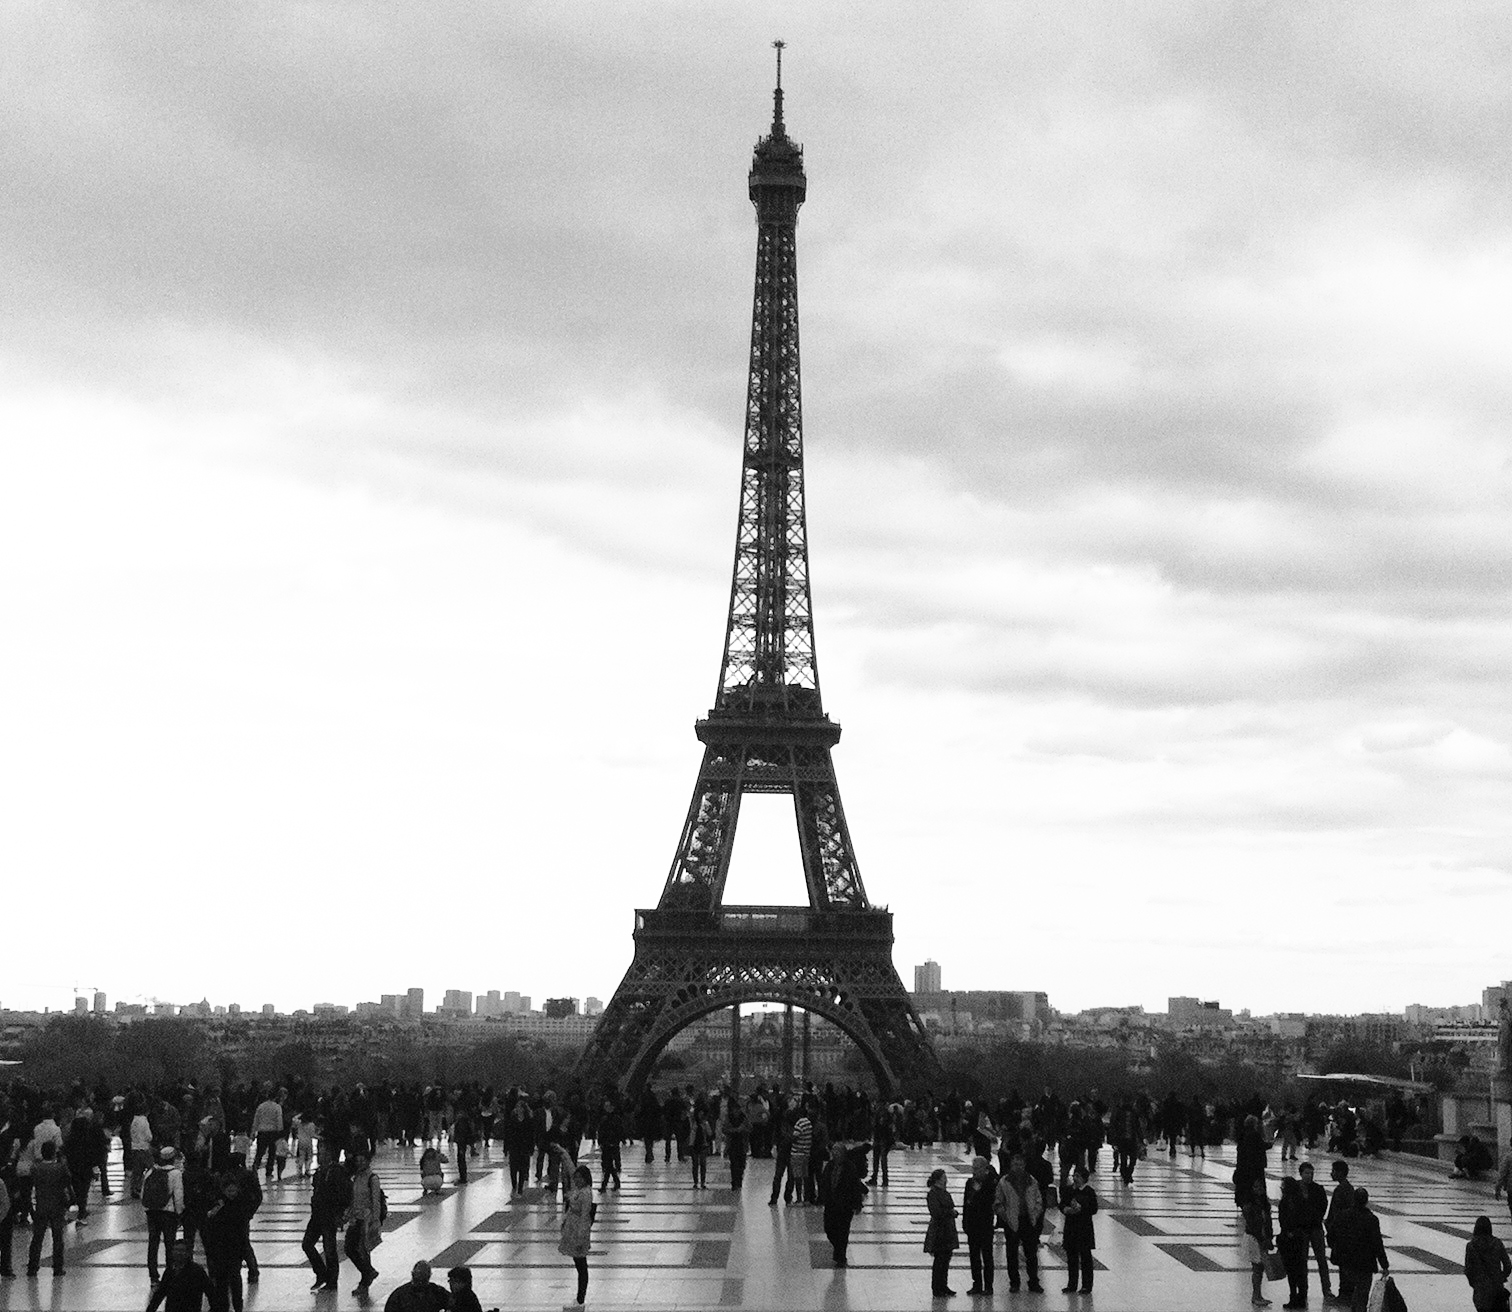 View of the Eiffel Tower from the Trocadéro